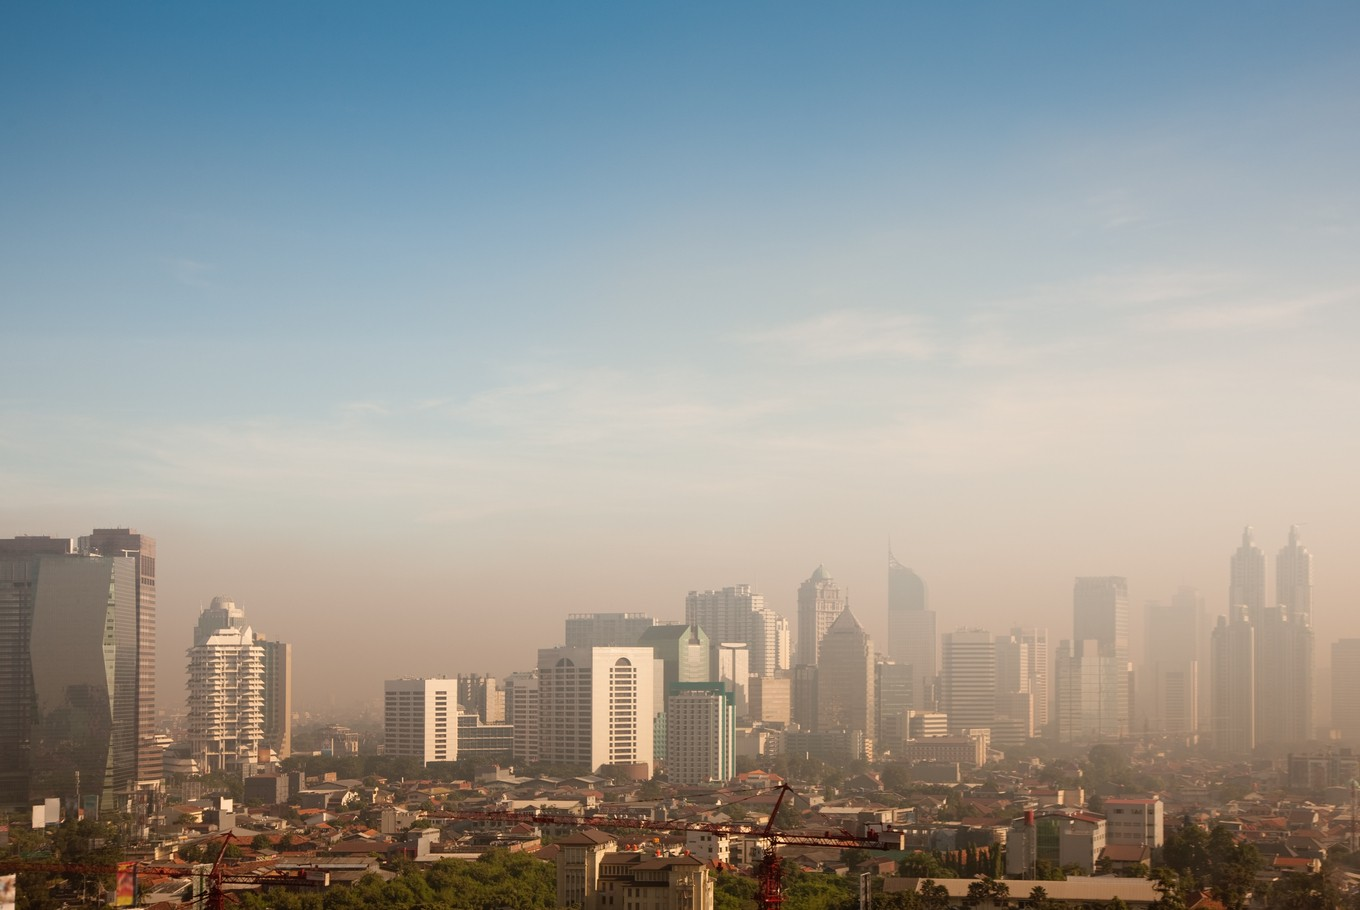 Greenpeace calls for bold action to improve Jakarta's air quality